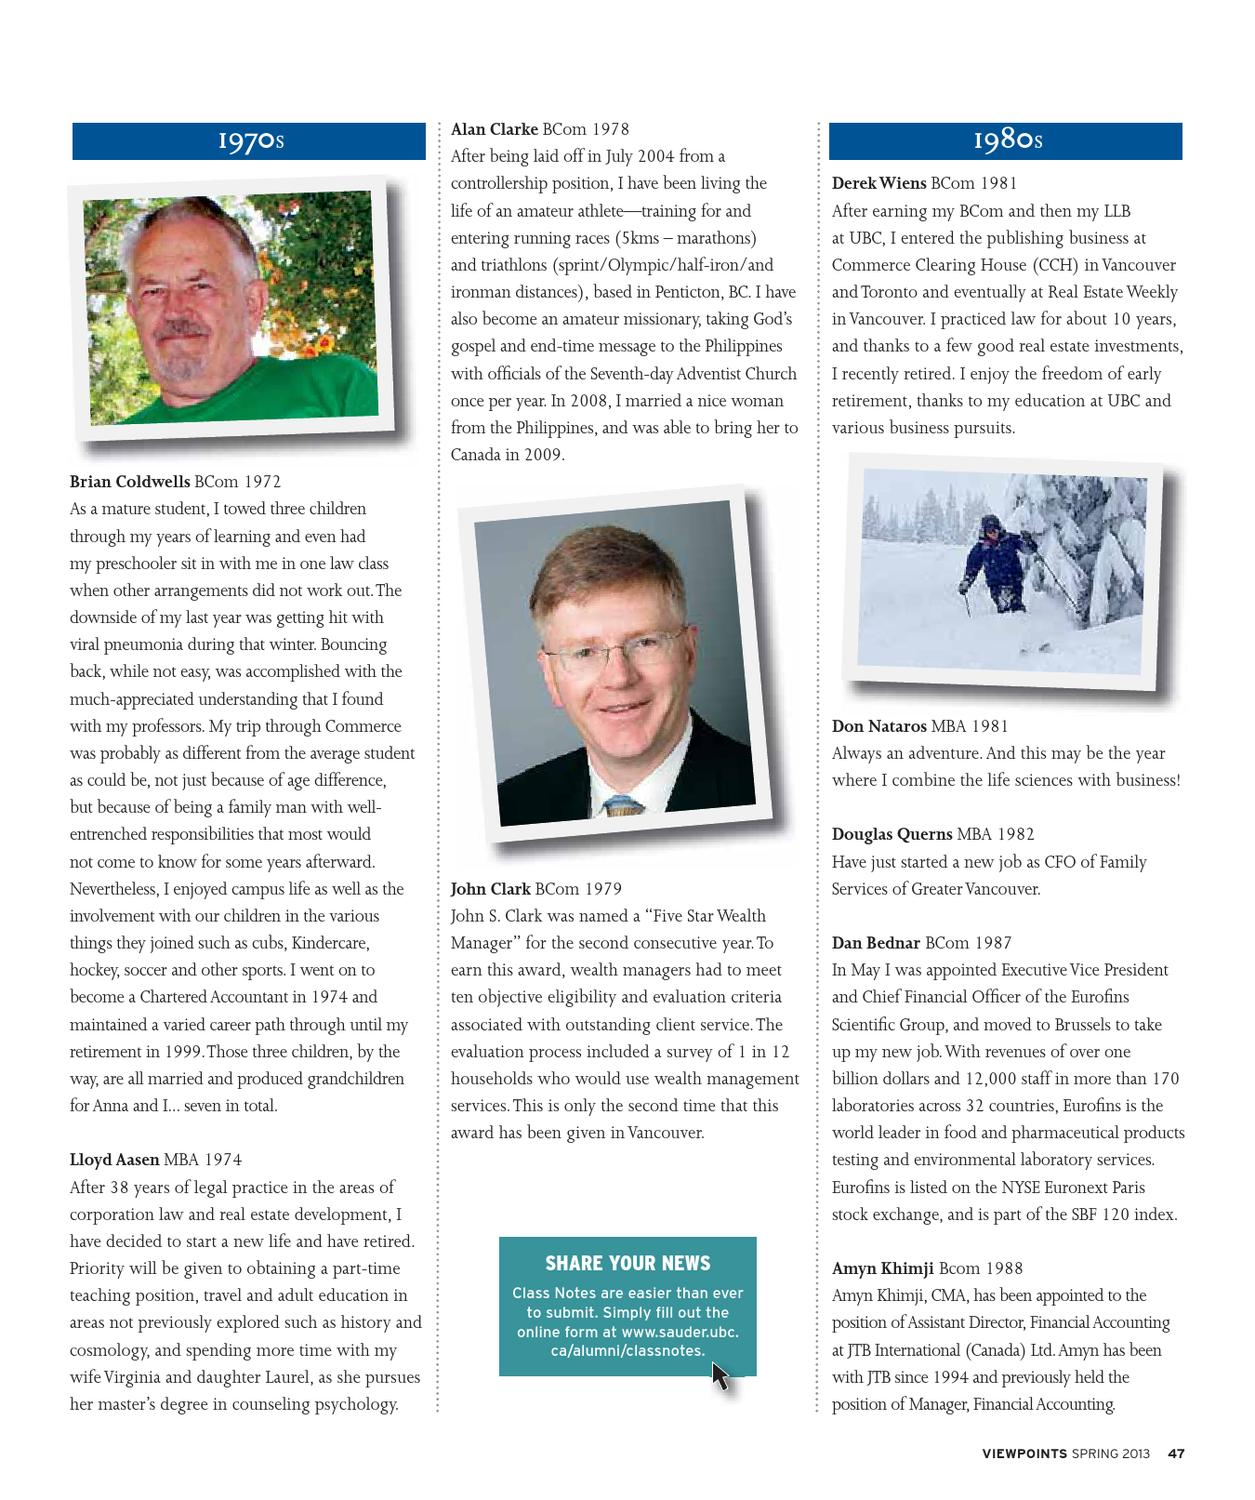 Viewpoints, Spring 2013 - Sauder School of Business by UBC Sauder